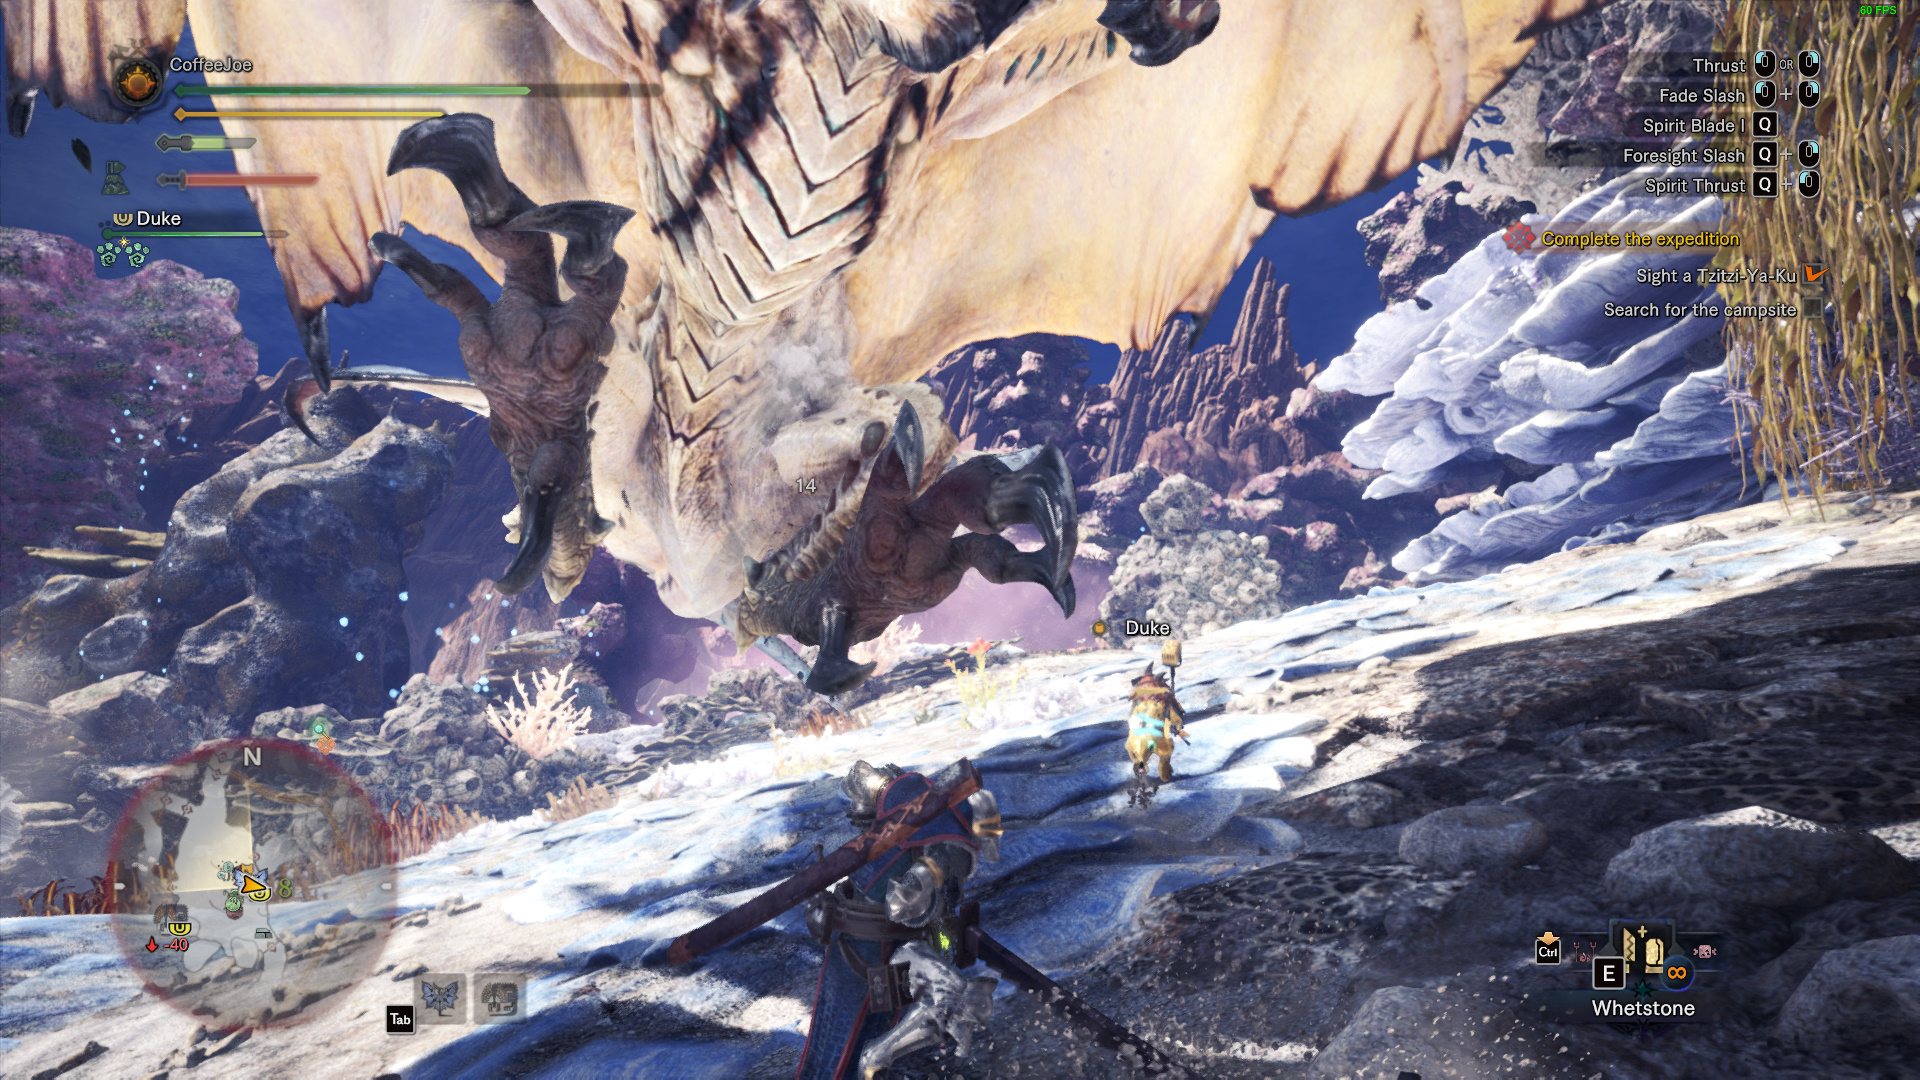 Monsterhunterworld Legiana Feet 3 By Giuseppedirosso On Deviantart